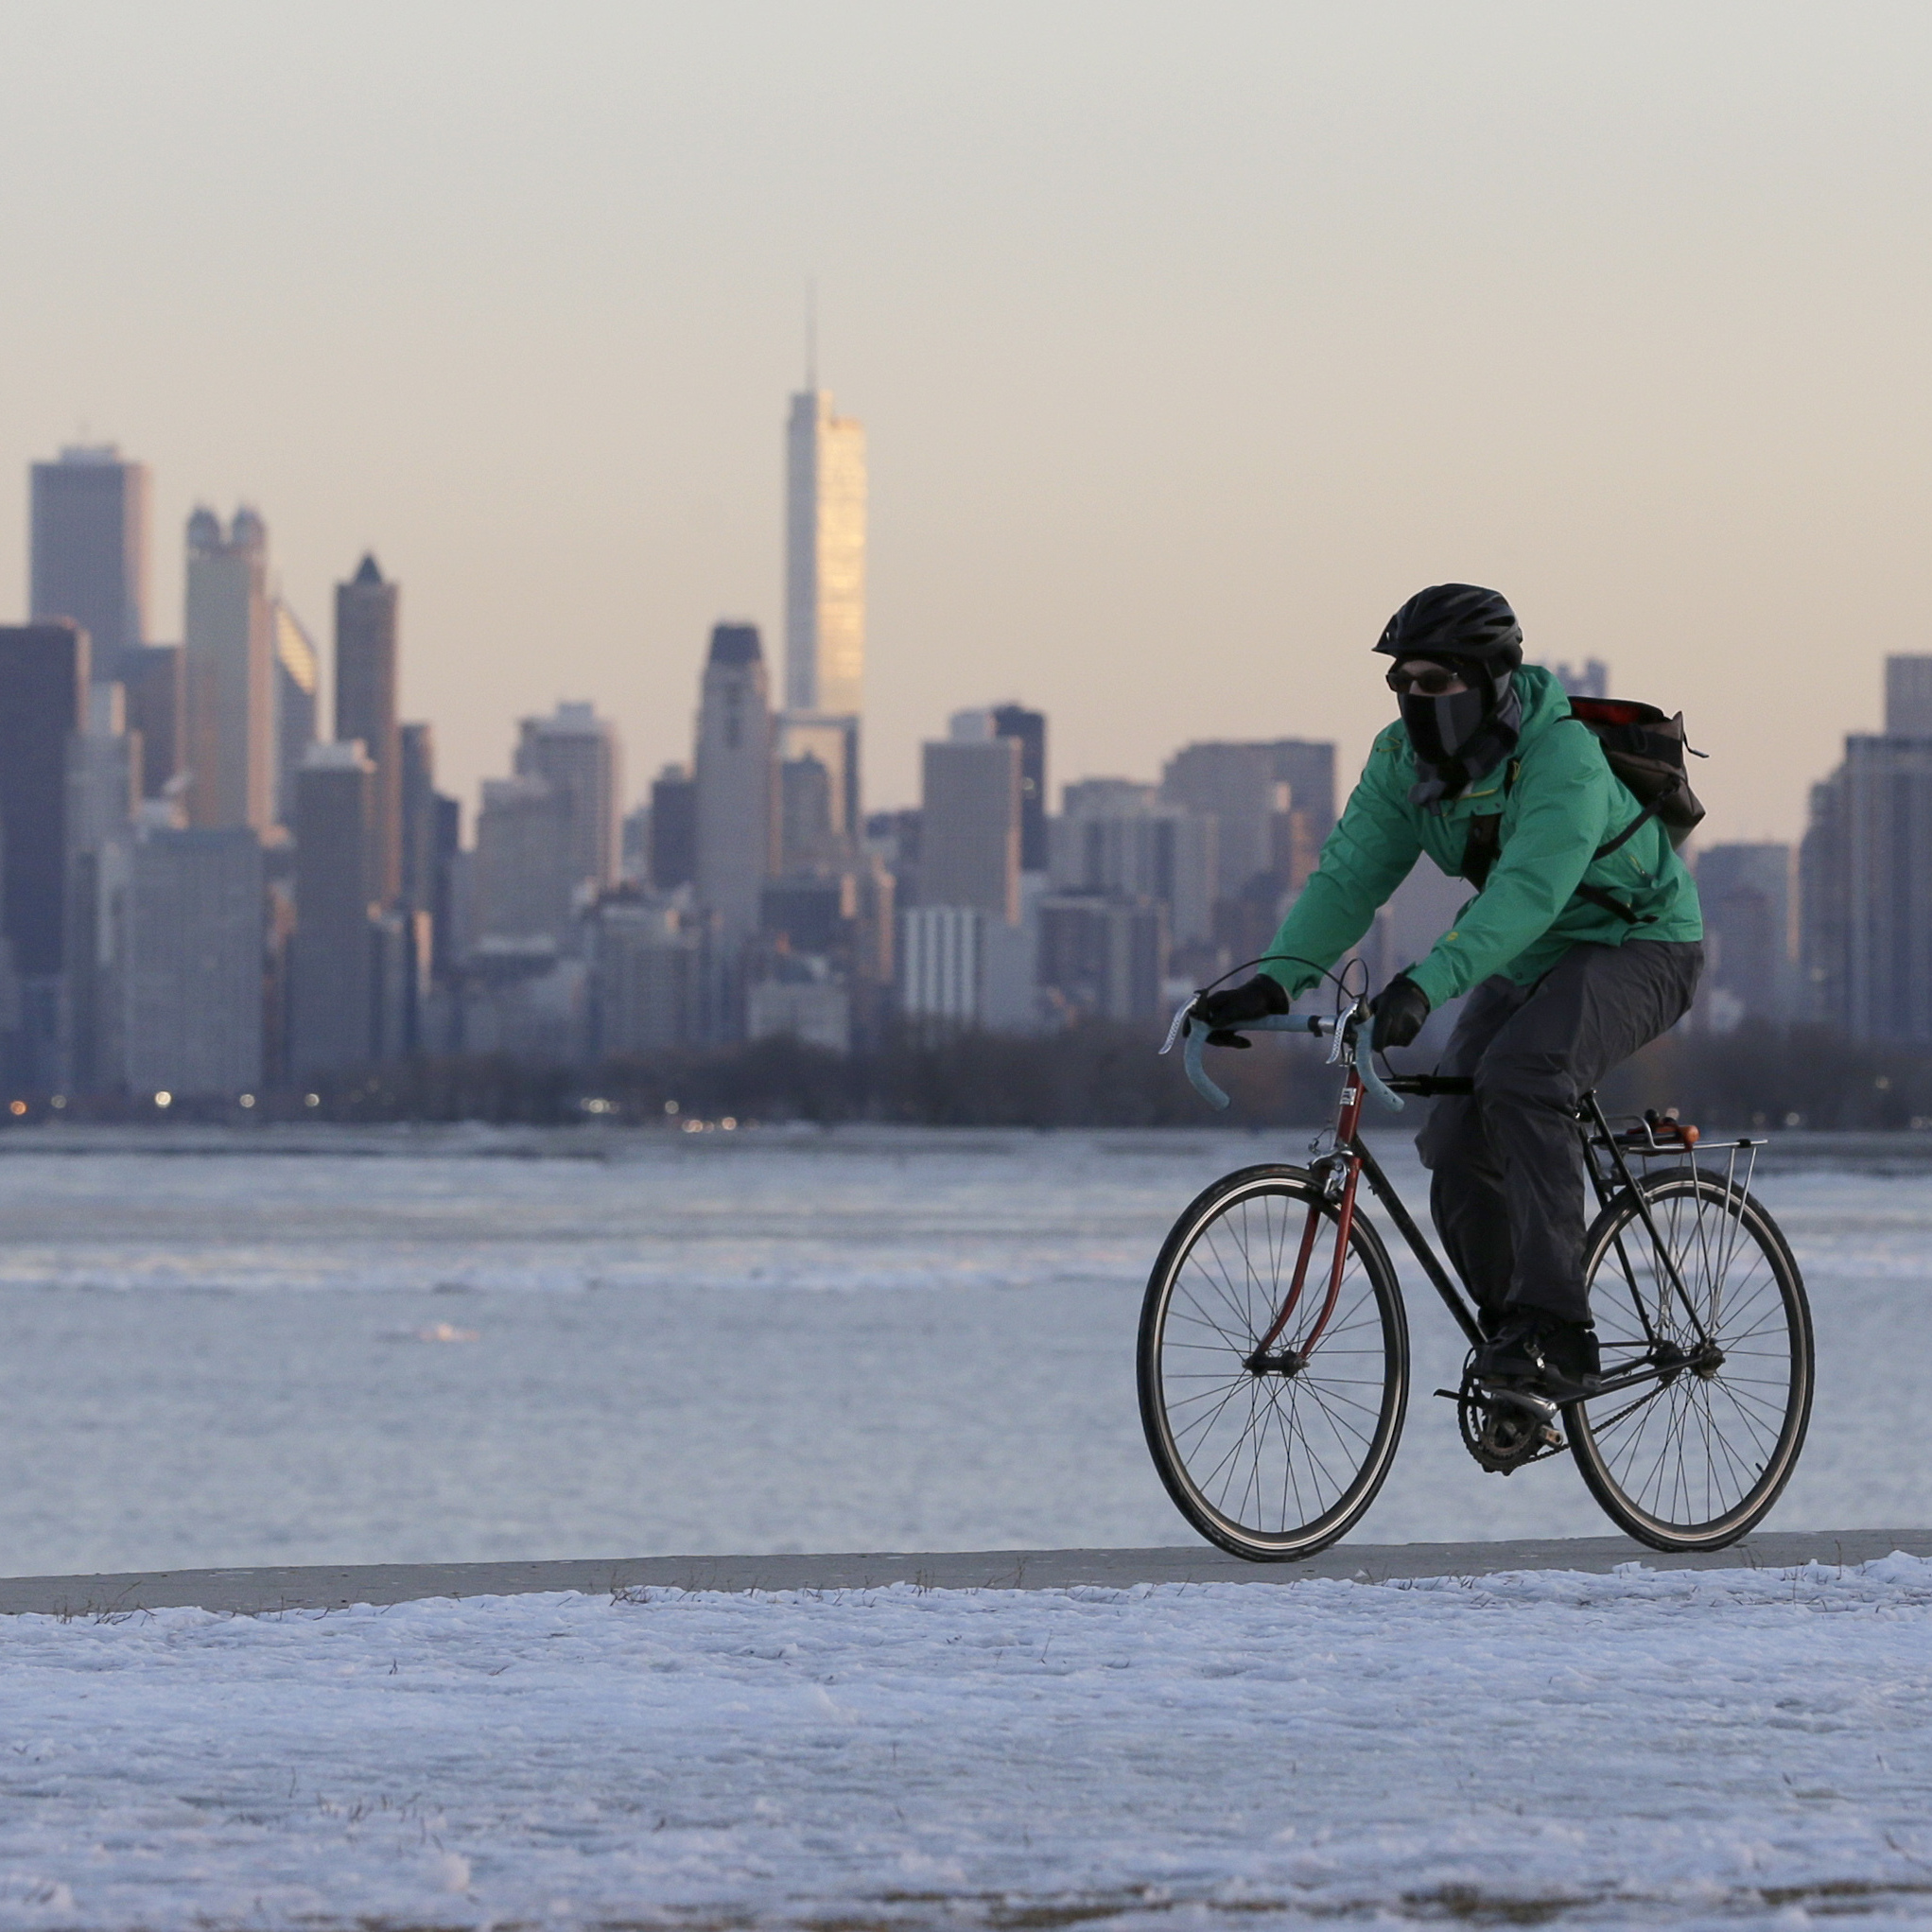 Bundled up: A biker in Chicago this weekend. The city is in the crosshairs of the storm that's going to dump snow across much of the nation.